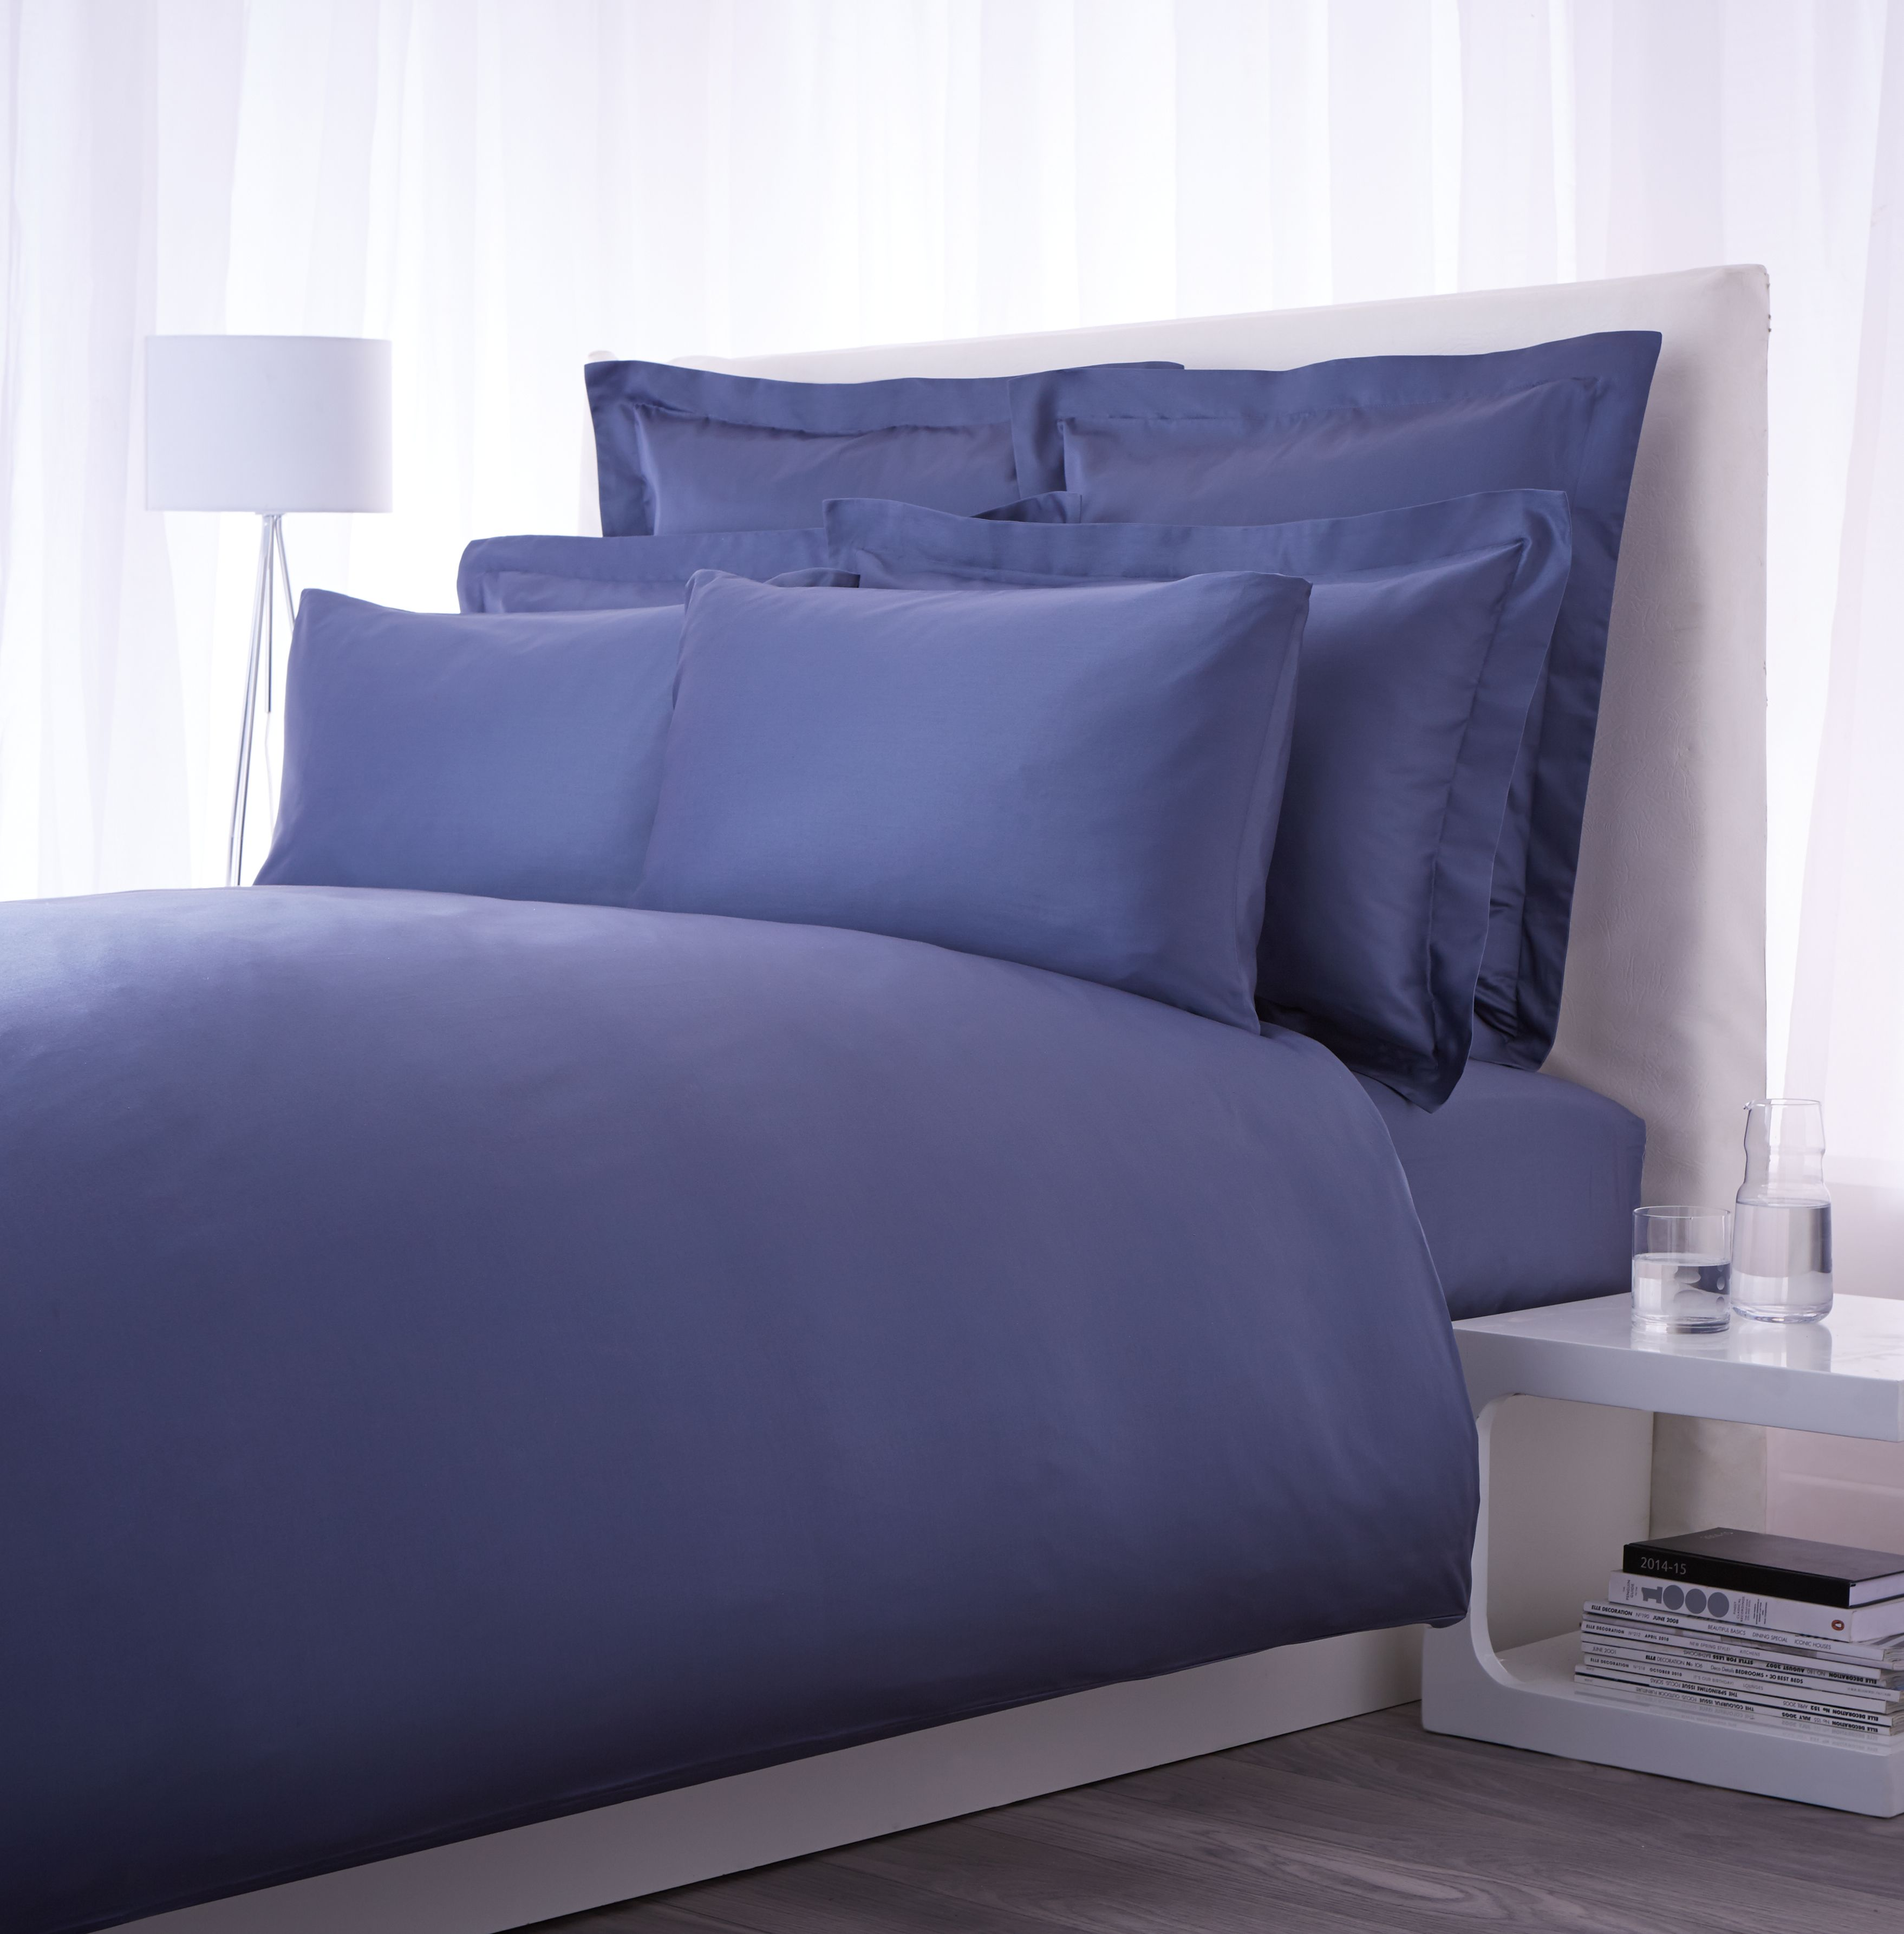 collection fraser hotel bedding furniture house g of luxury range blue airforce bd pd home and comforter